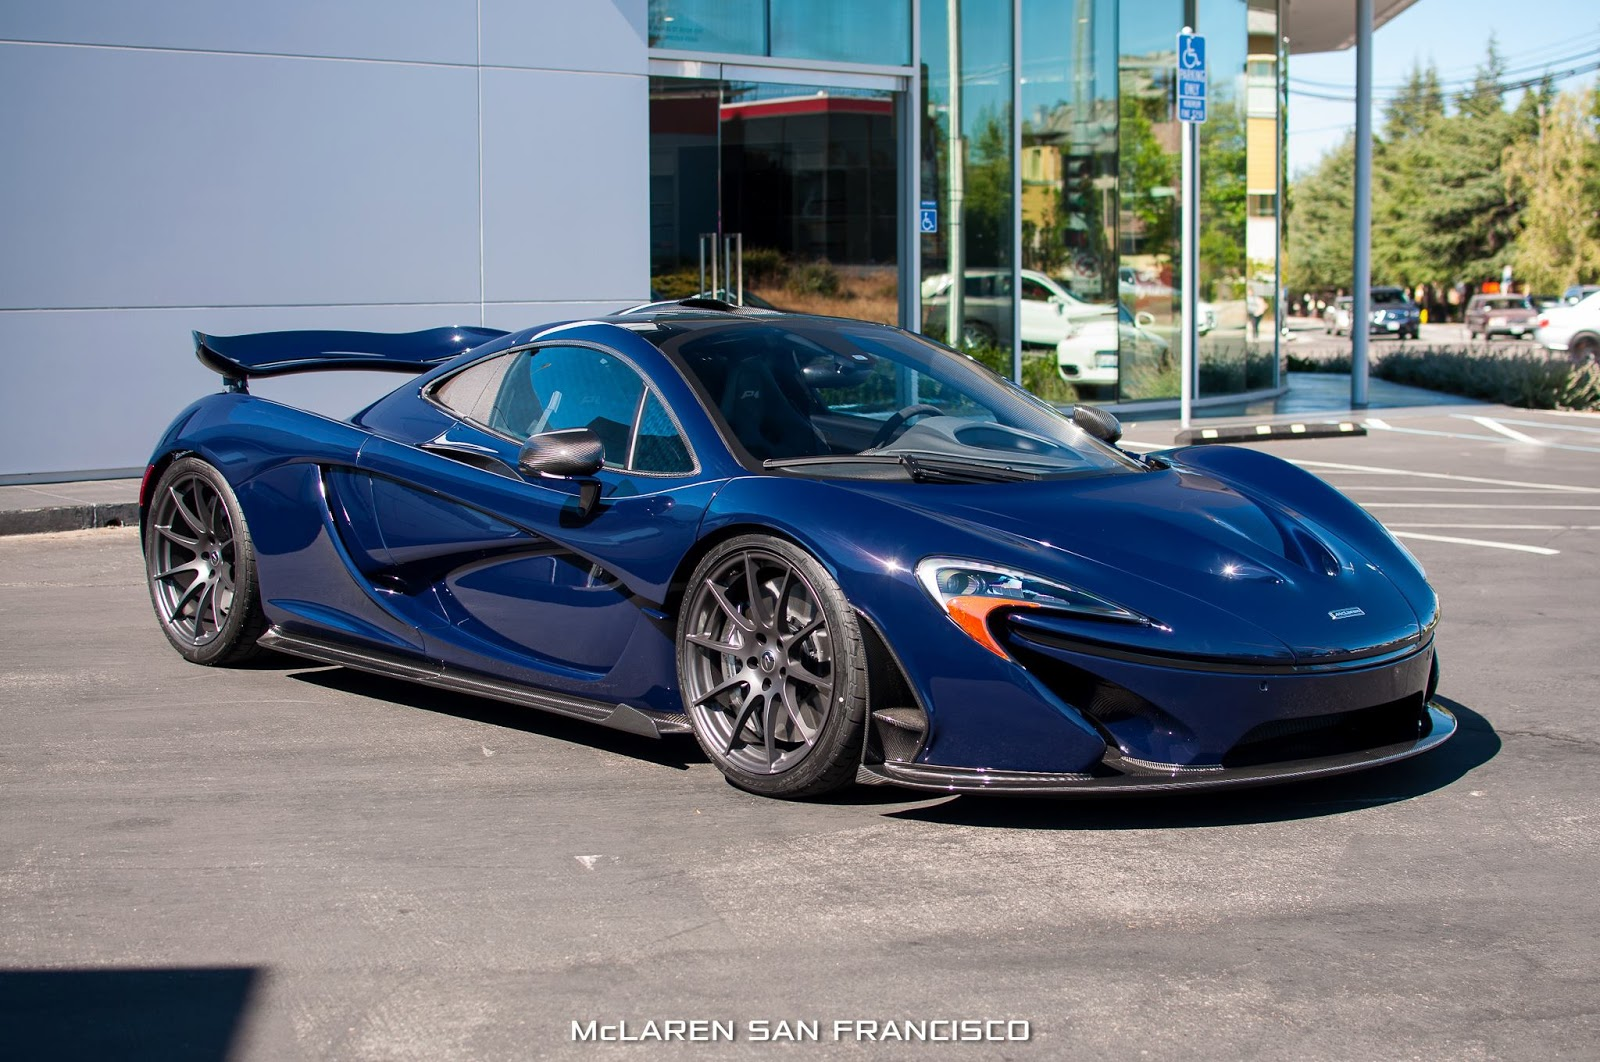 stunning dark blue mclaren p1 arrives in san francisco gtspirit. Black Bedroom Furniture Sets. Home Design Ideas